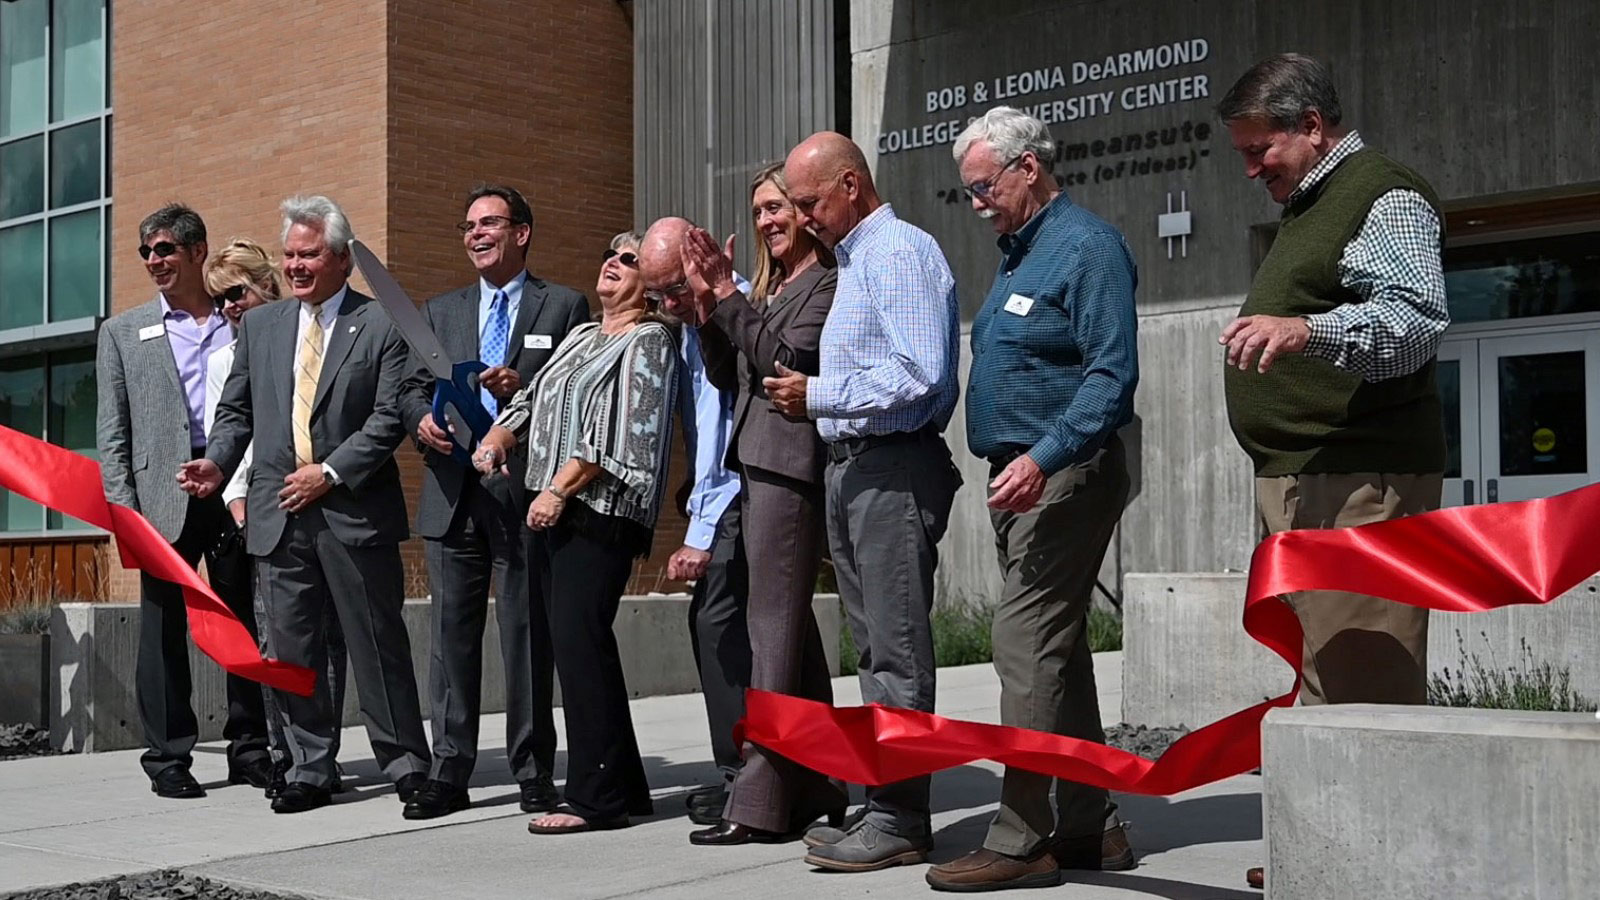 U of I President Scott Green cuts the ribbon on the DeArmond Center alongside North Idaho College President Rick MacLennan, LCSC President Cynthia Pemberton and others.